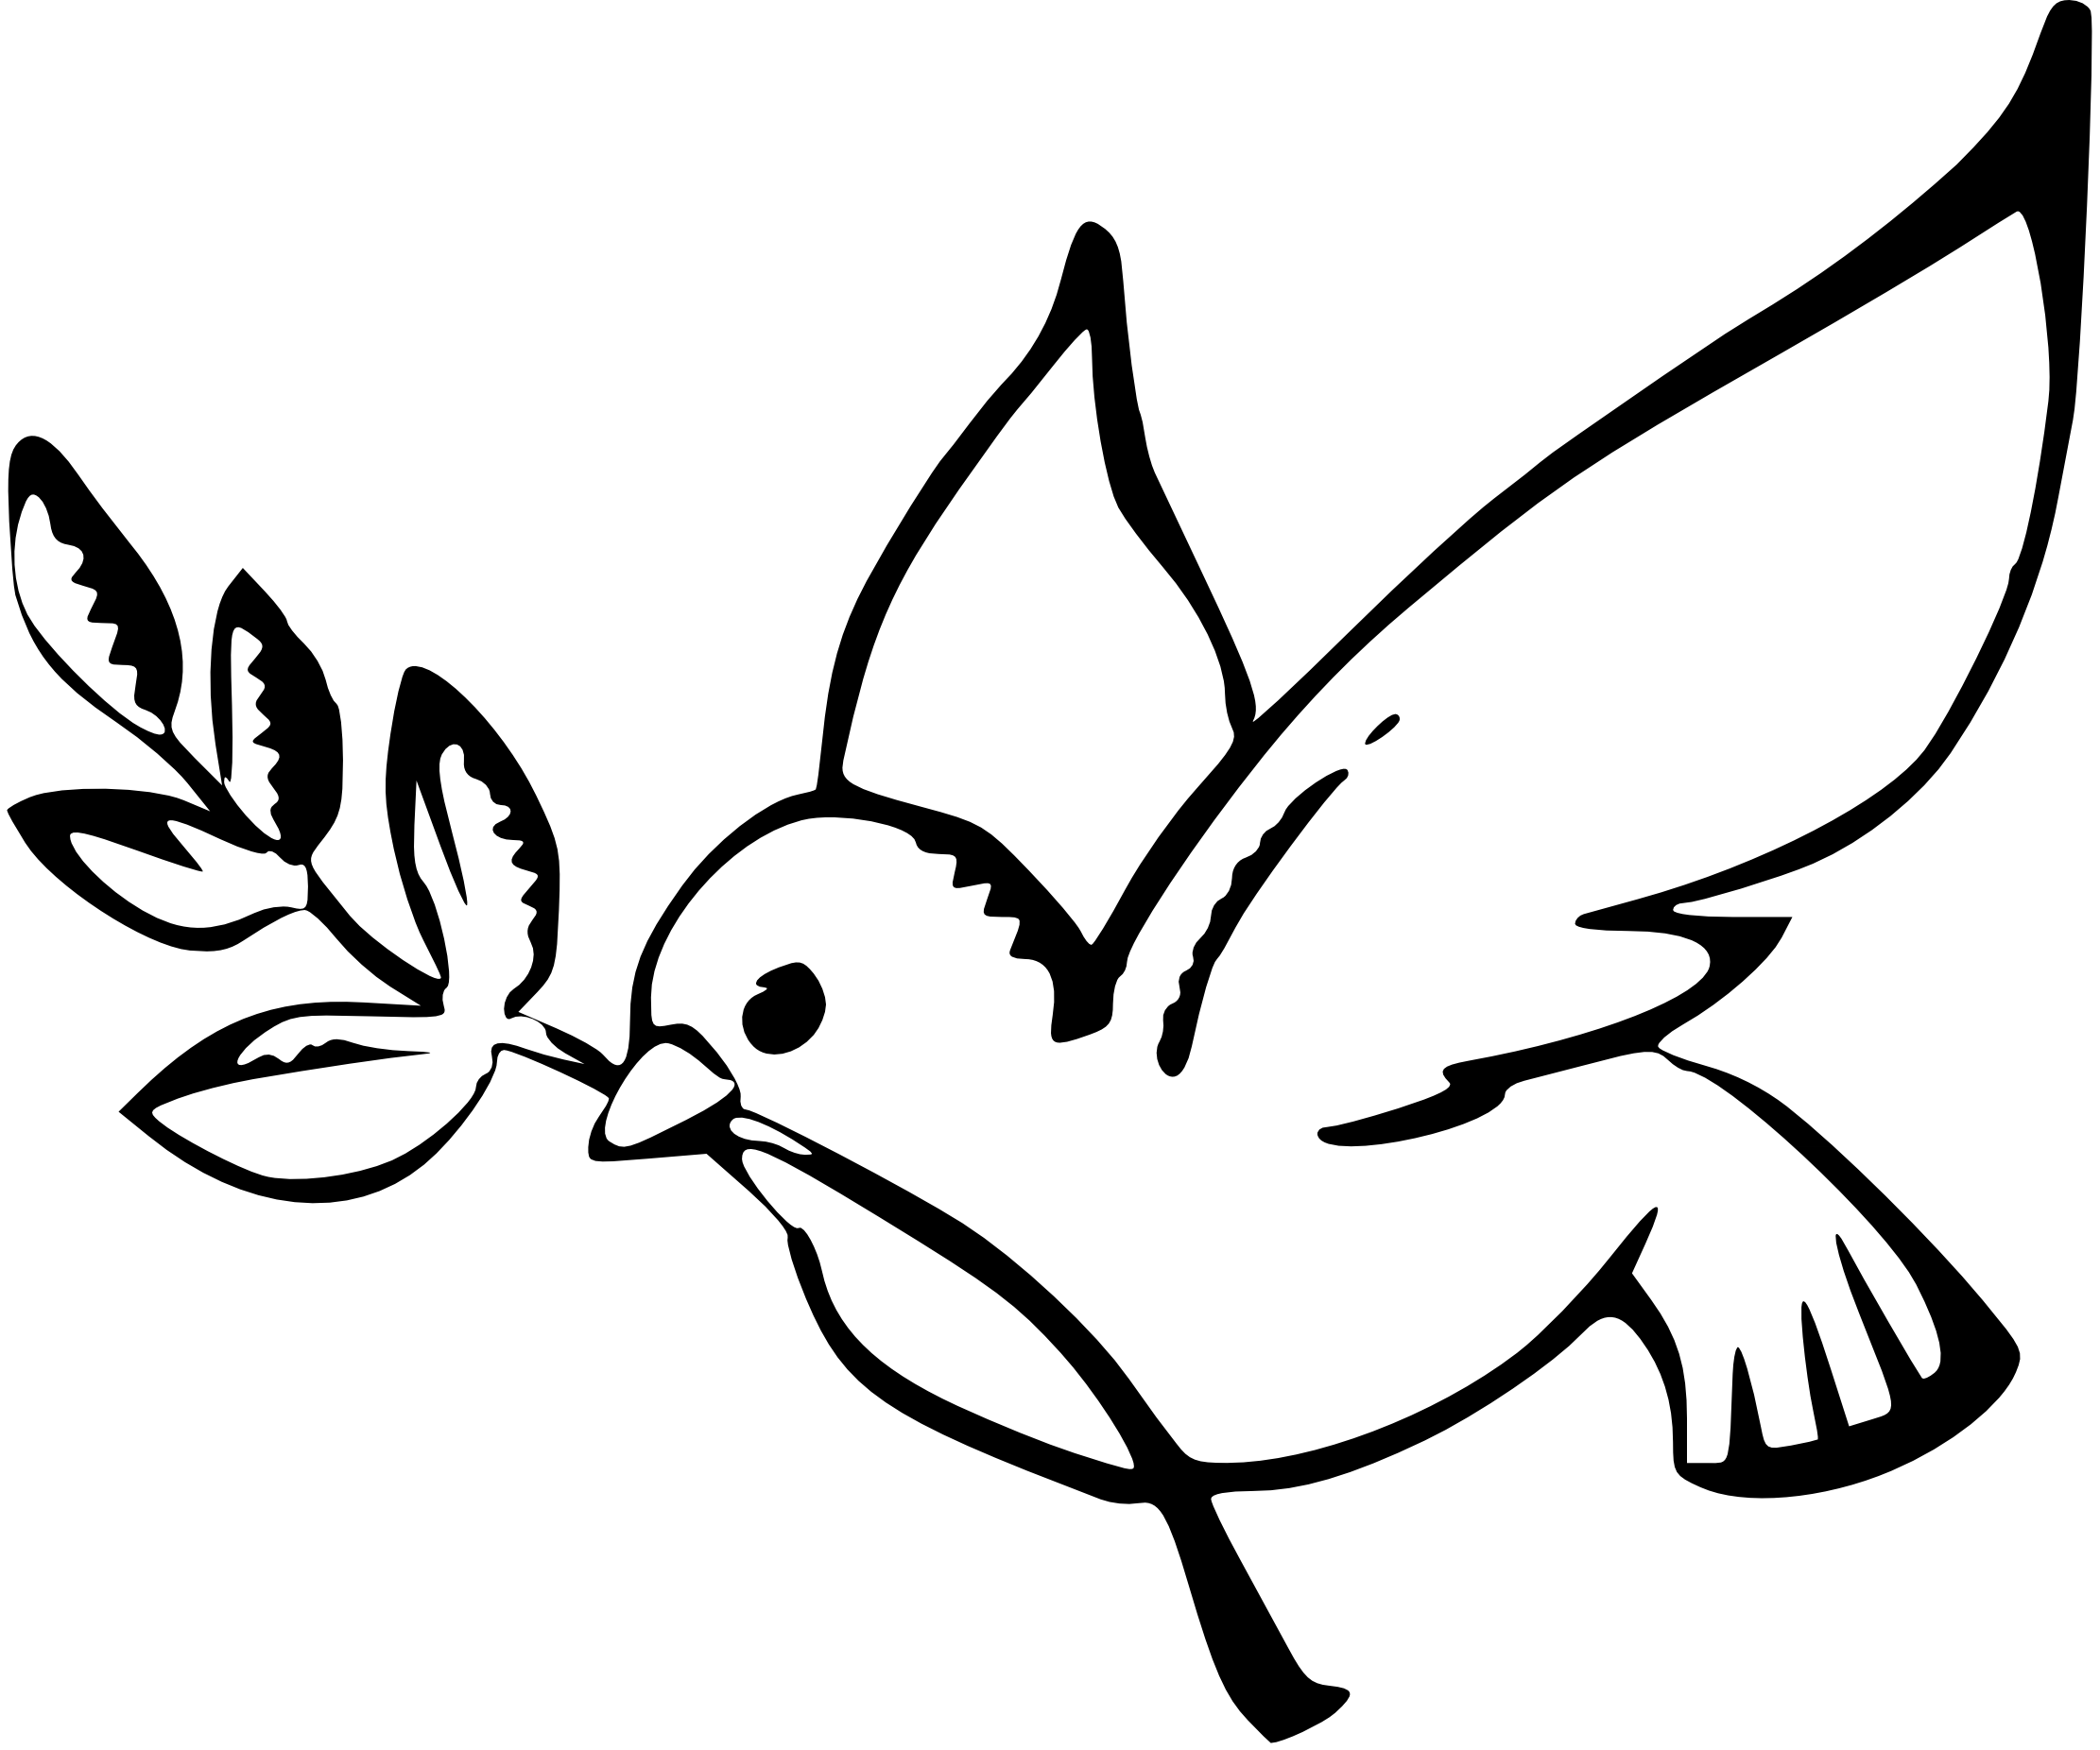 Marriage clipart welcome. Dove in flight drawing